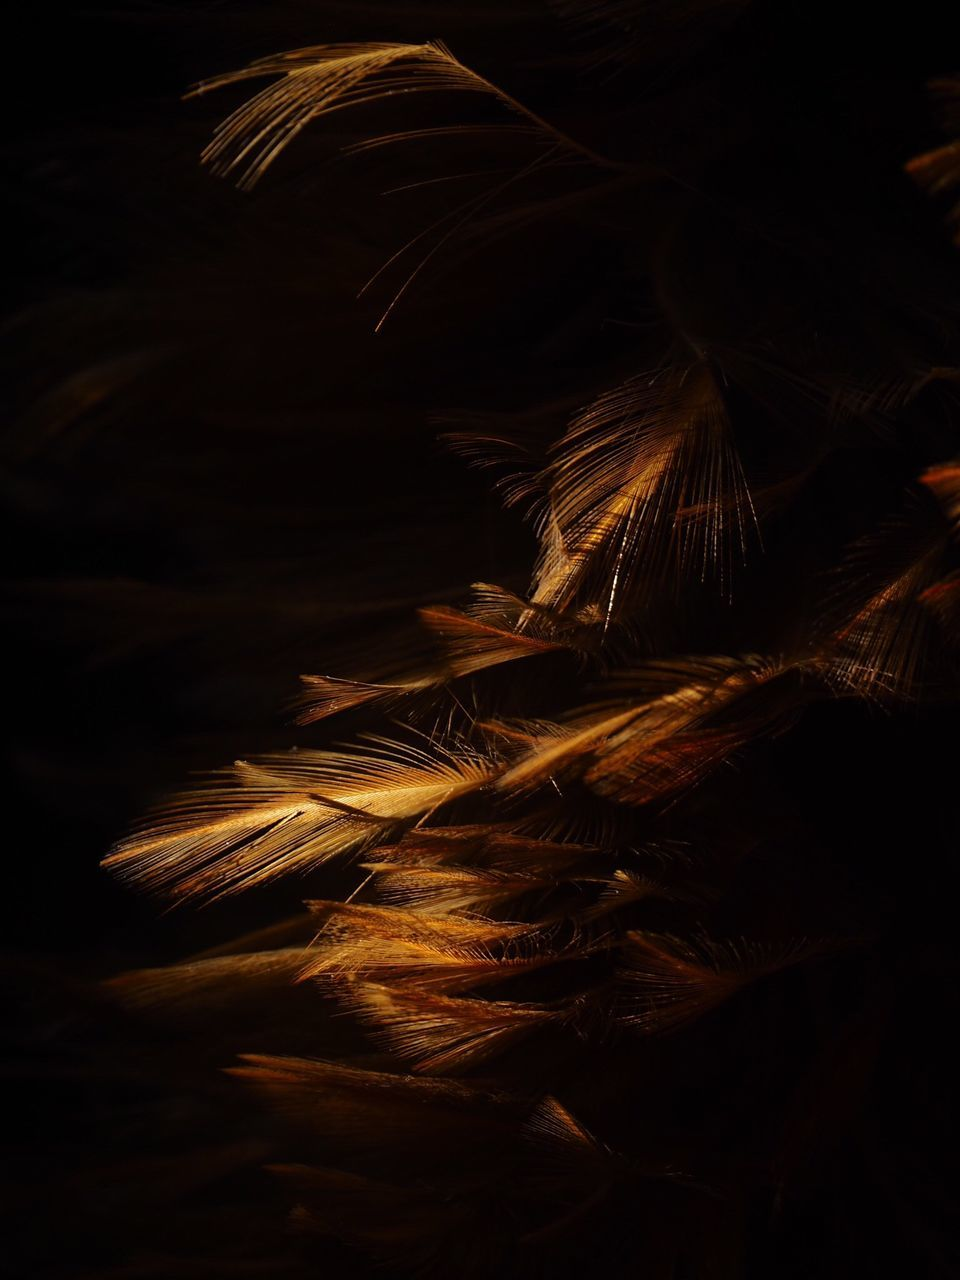 night, indoors, close-up, no people, black background, nature